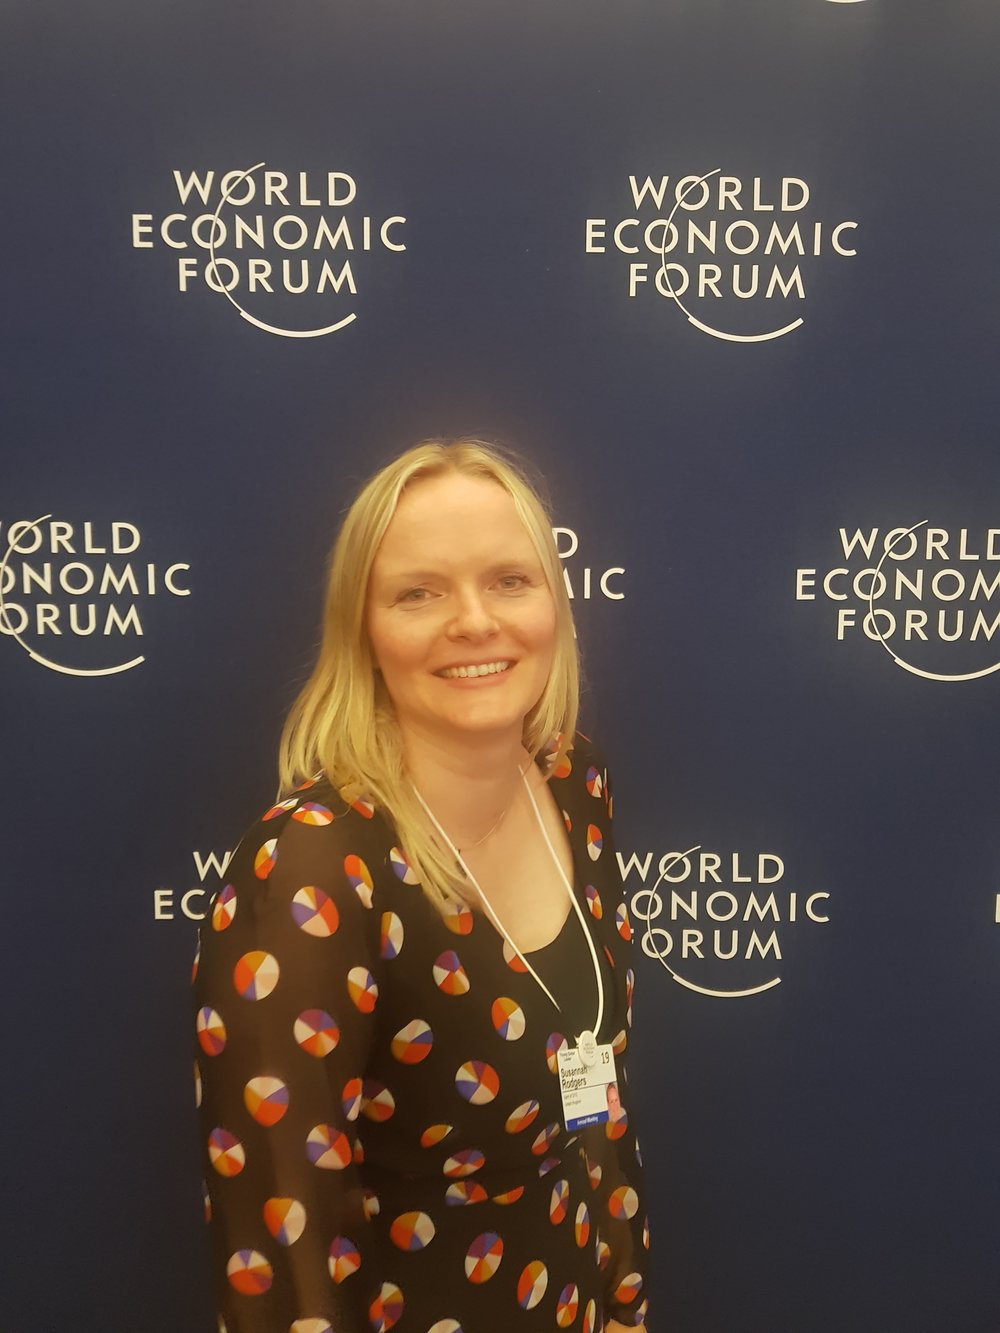 Susie attends the World Economic Forum's Annual Meeting 2019 in Davos, speaking and moderating on three panels for the Forum around disability, inclusion, education and design